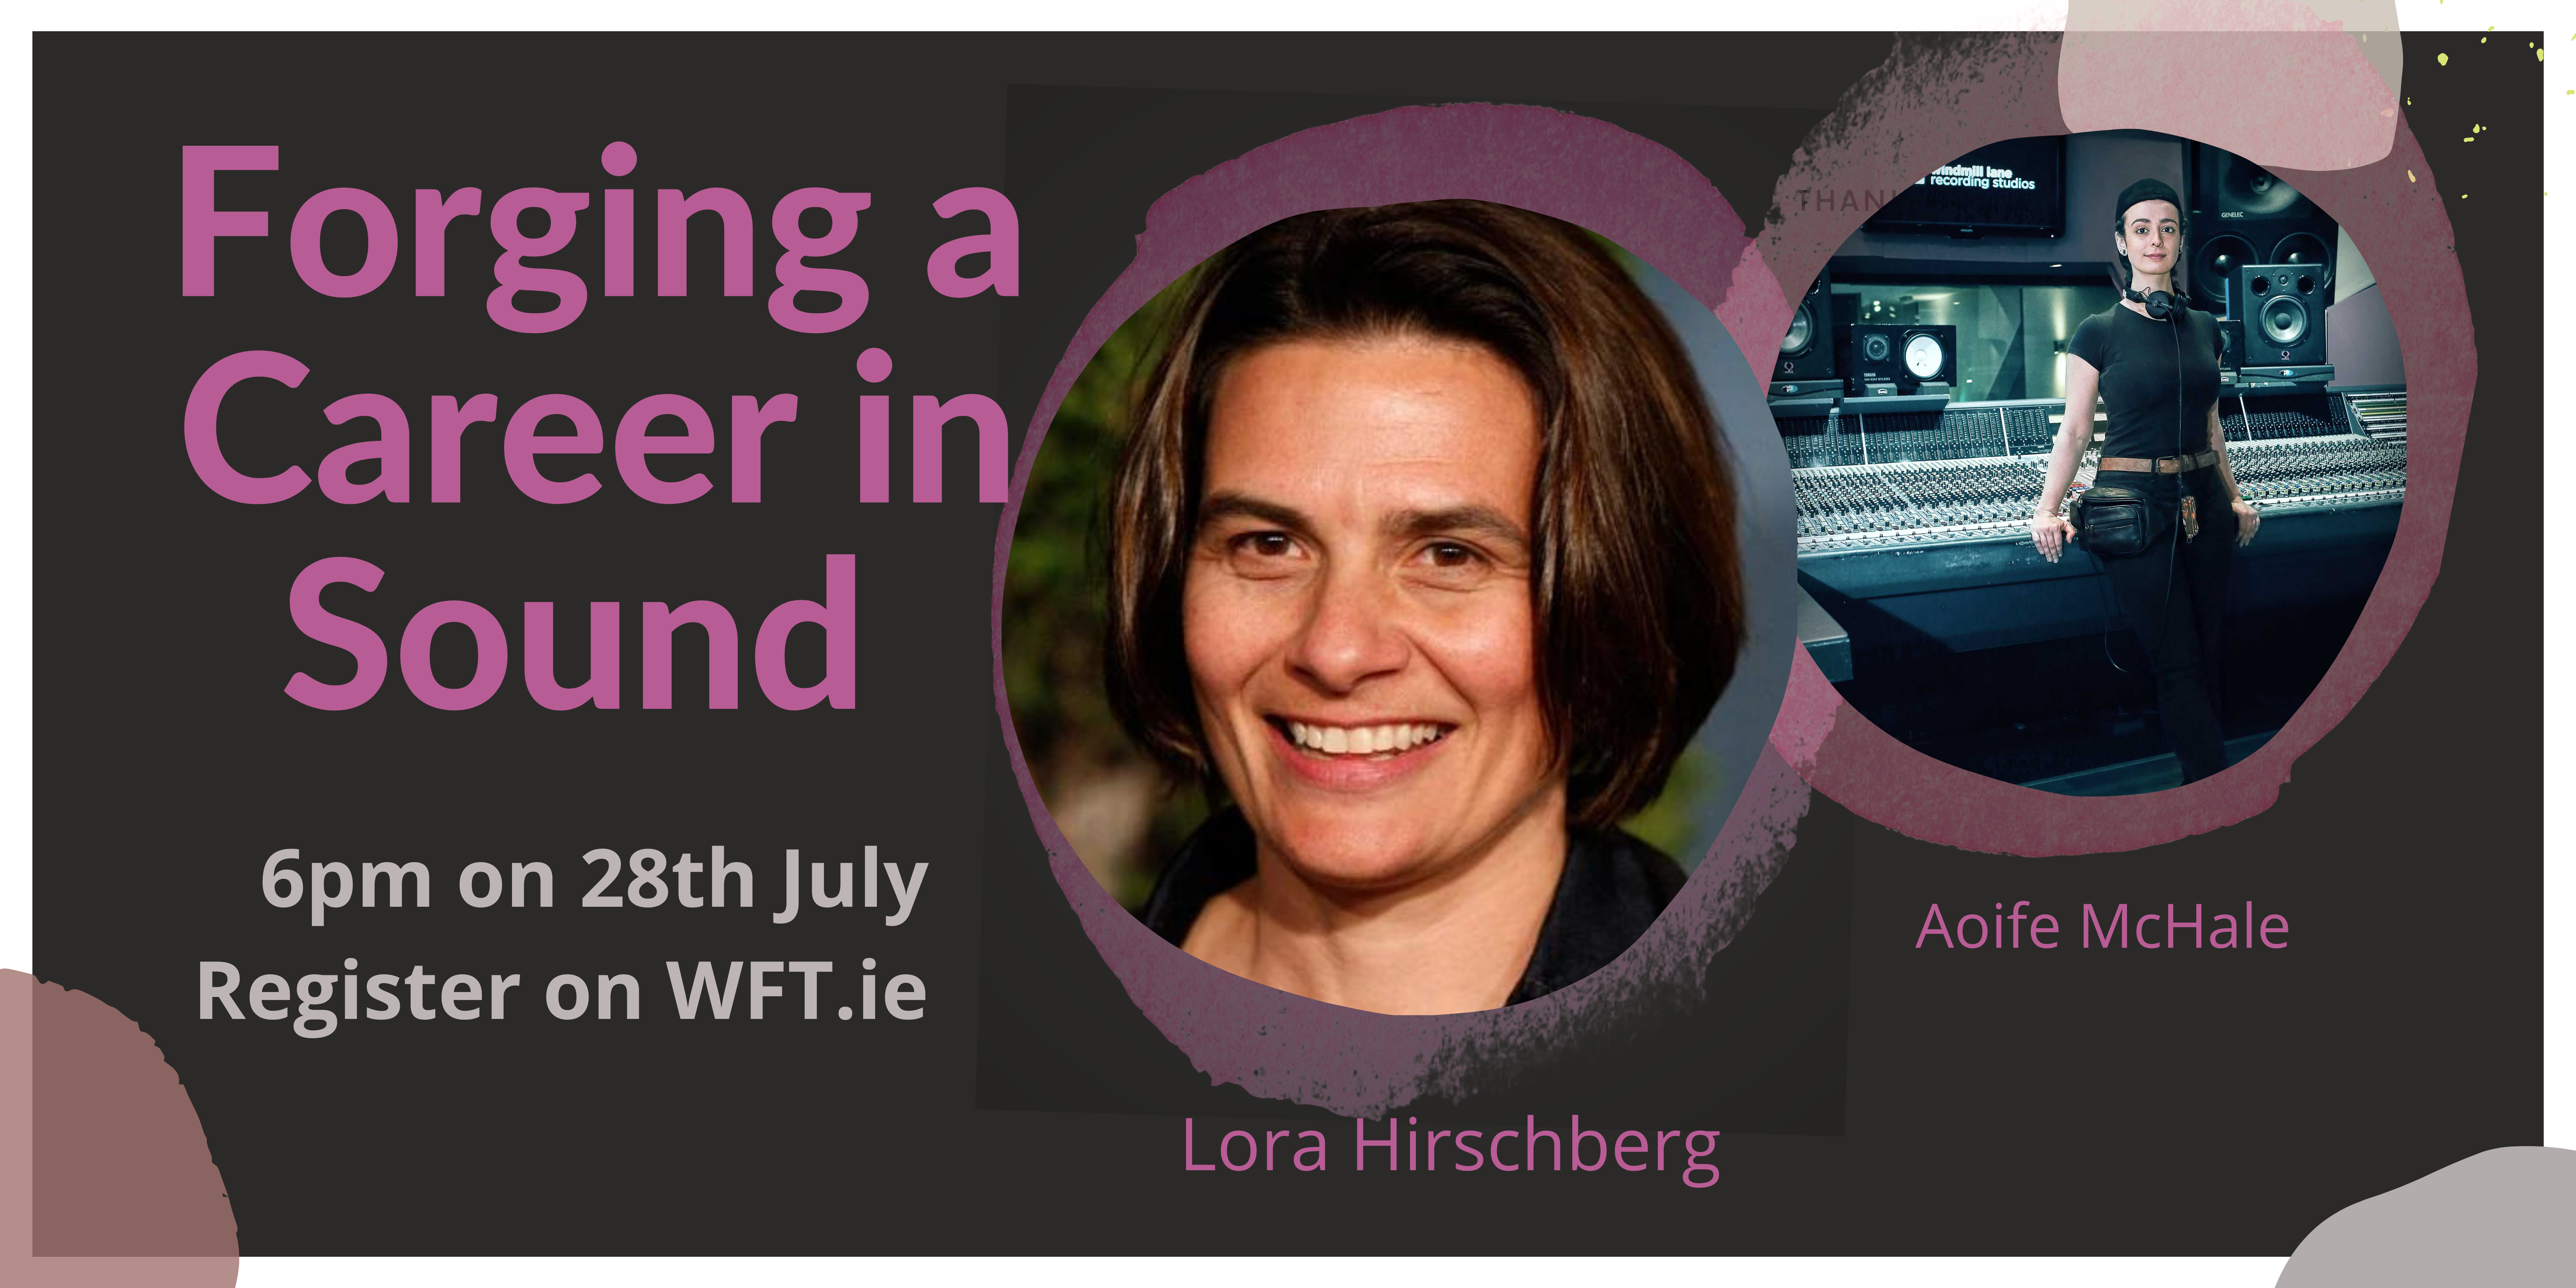 Crew Talks: Forging a Career in Sound with Lora Hirschberg